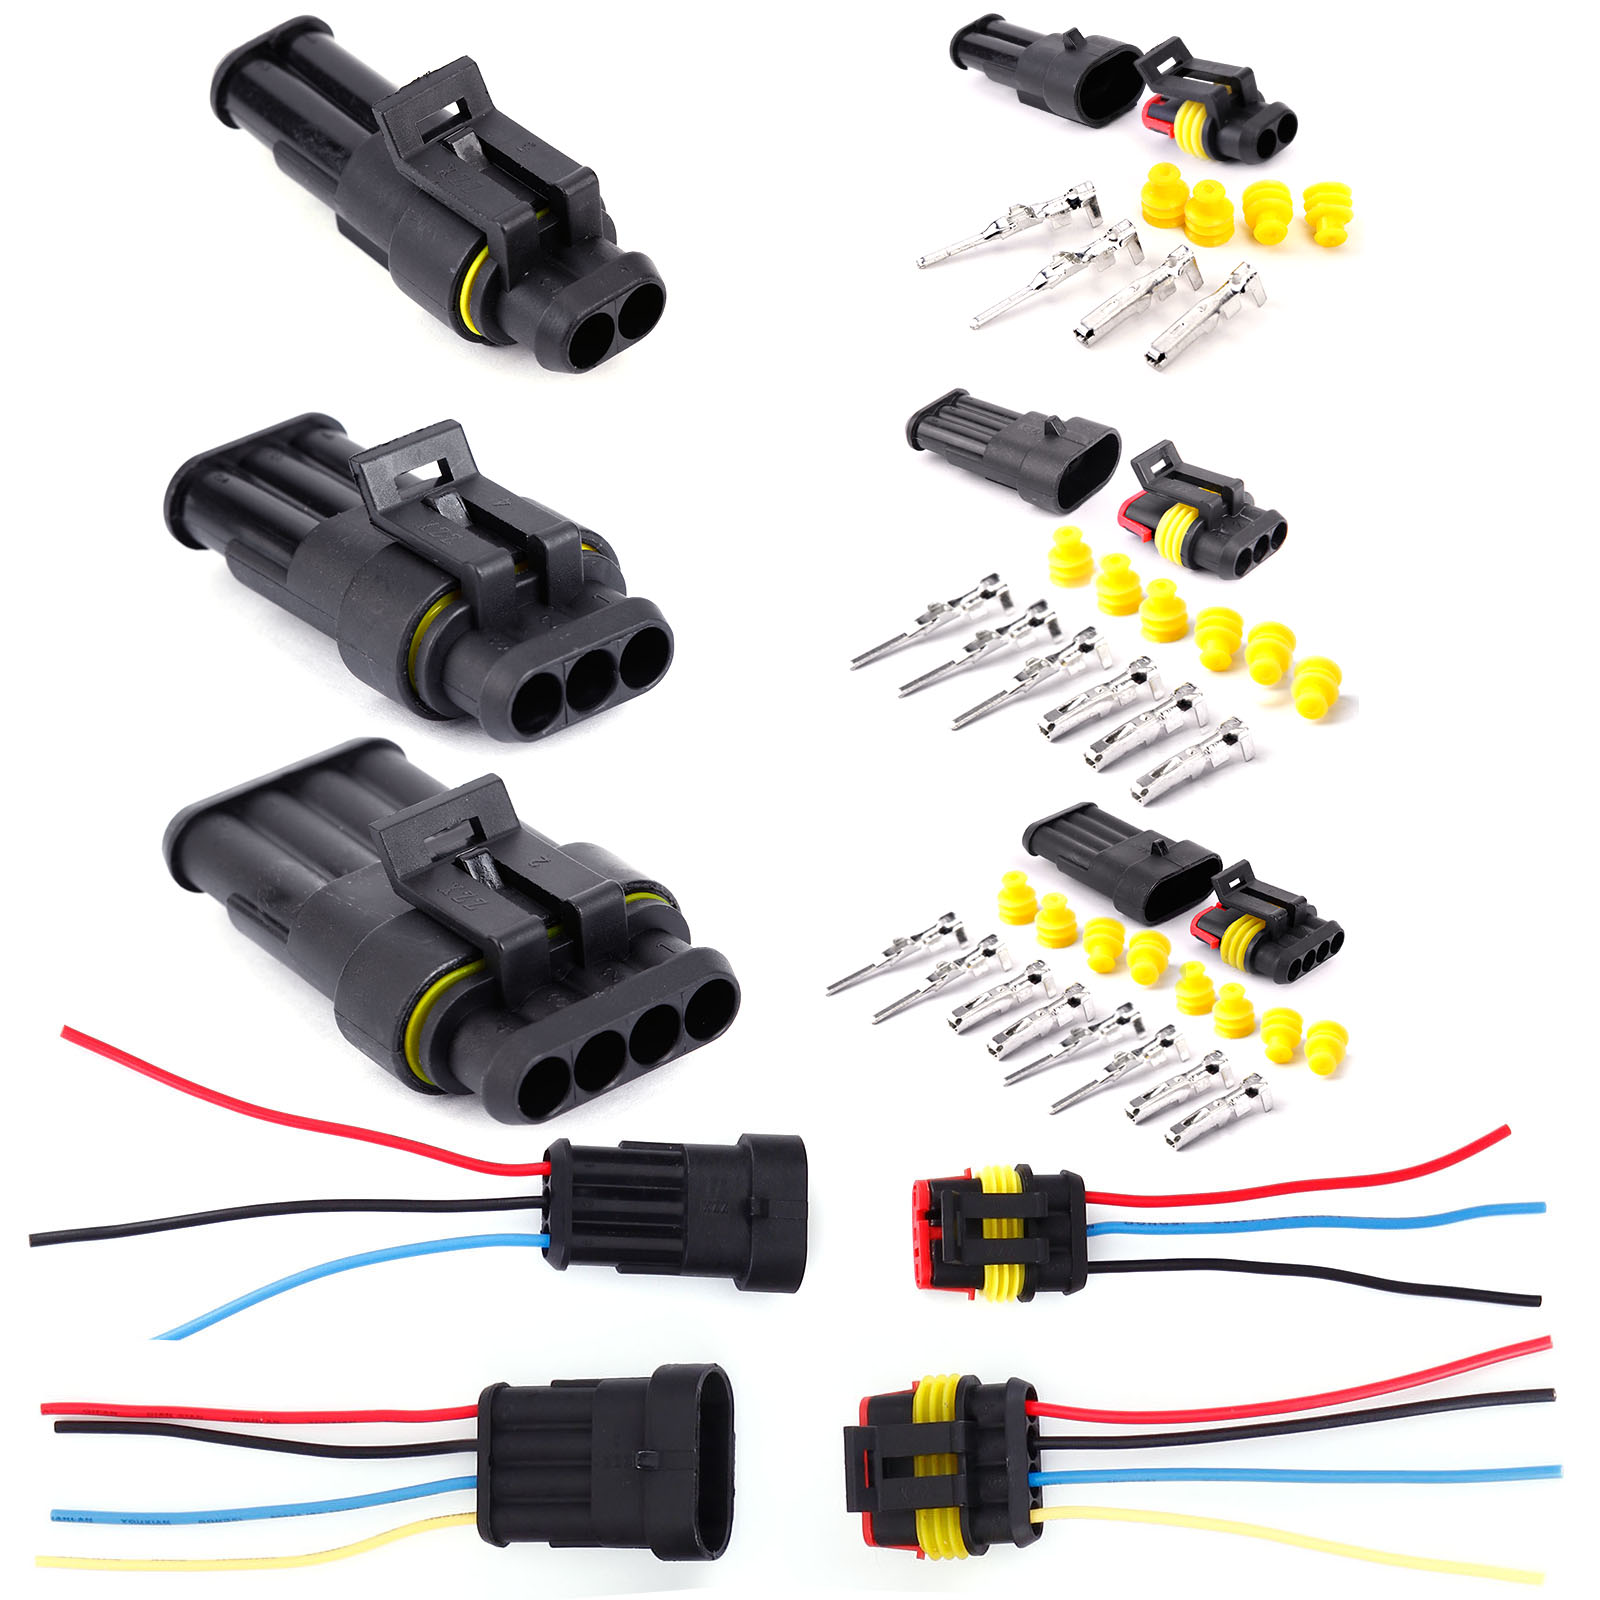 2 3 4 PIN WAY ELECTRICAL WATERPROOF CONNECTORS PLUG SET OF 5/10PCS ...